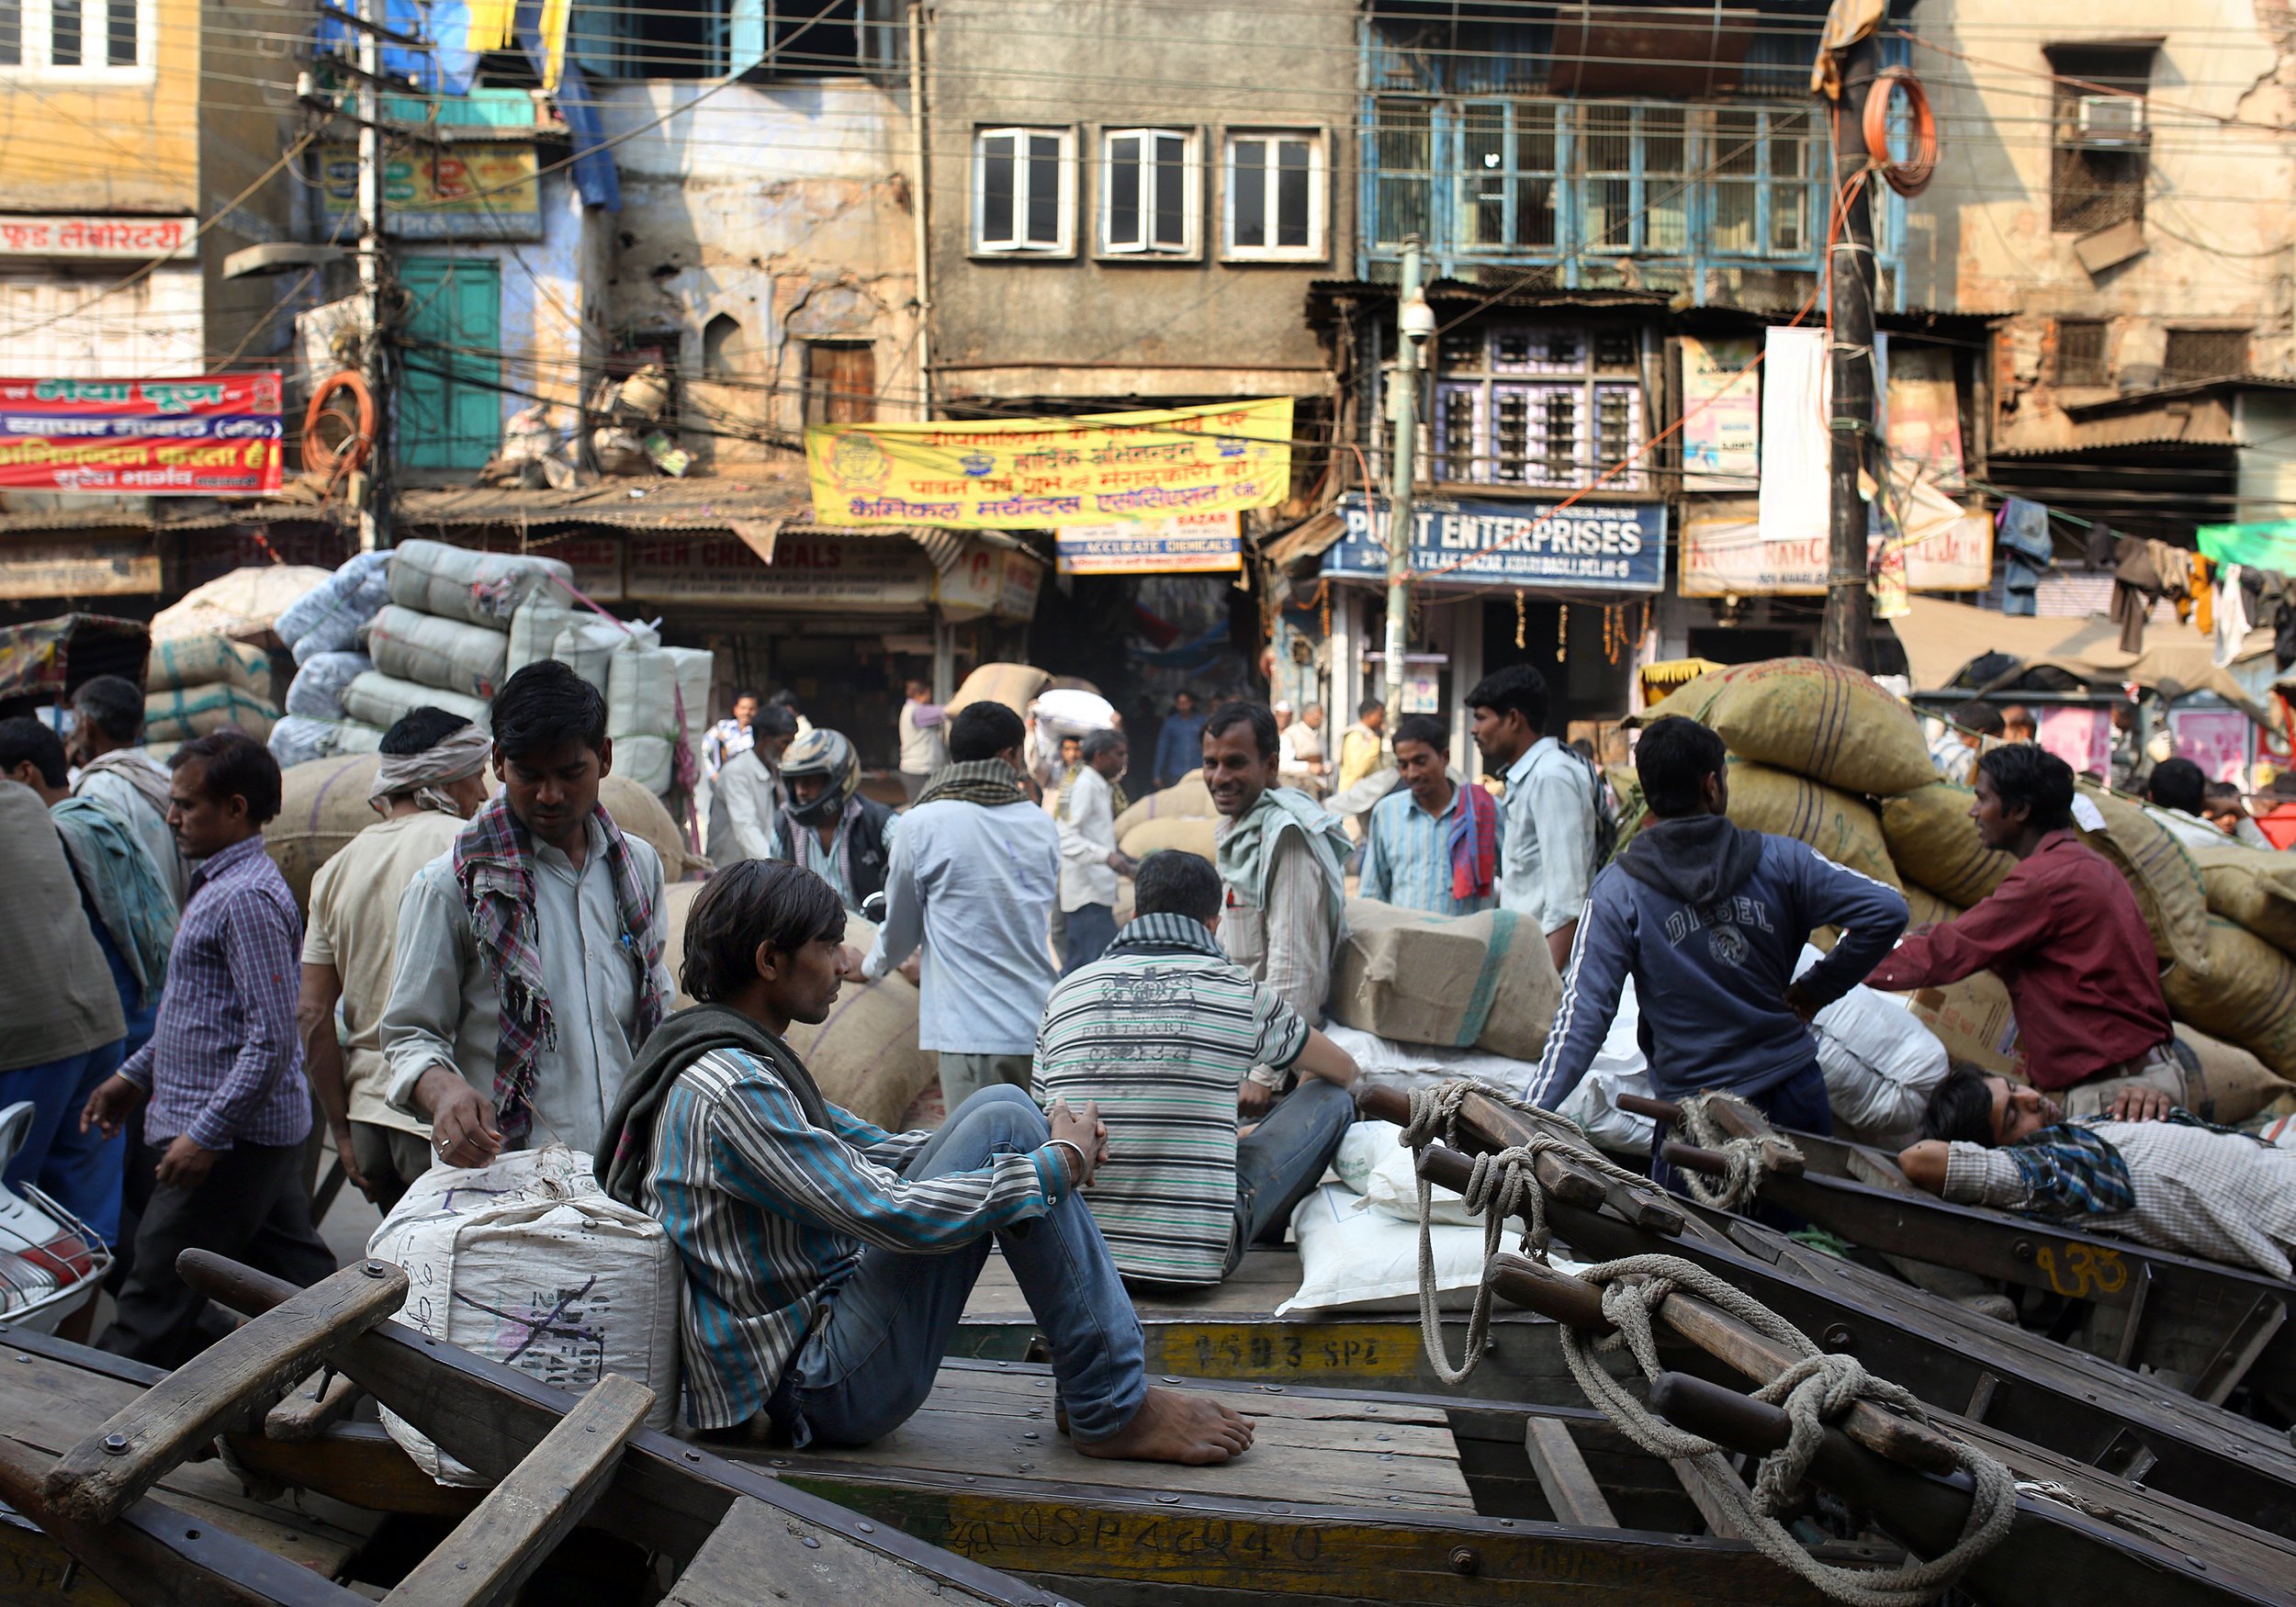 Market traders are pictured in the Spice Market region on Old Delhi, India.